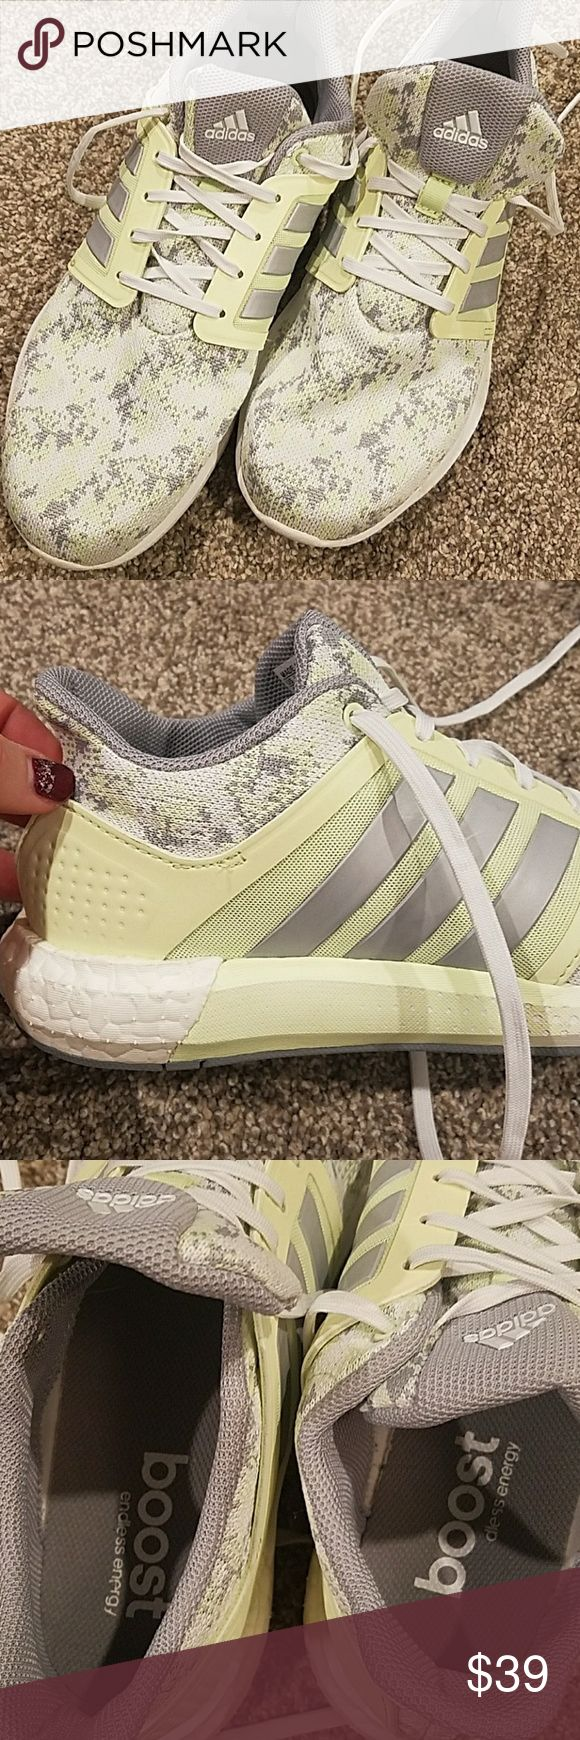 Like new Adidas endless energy boost sneakers Worn once...sadly to big.  willing to sell OR trade for similar condition Adidas in any style size 9.5 adidas Shoes Athletic Shoes